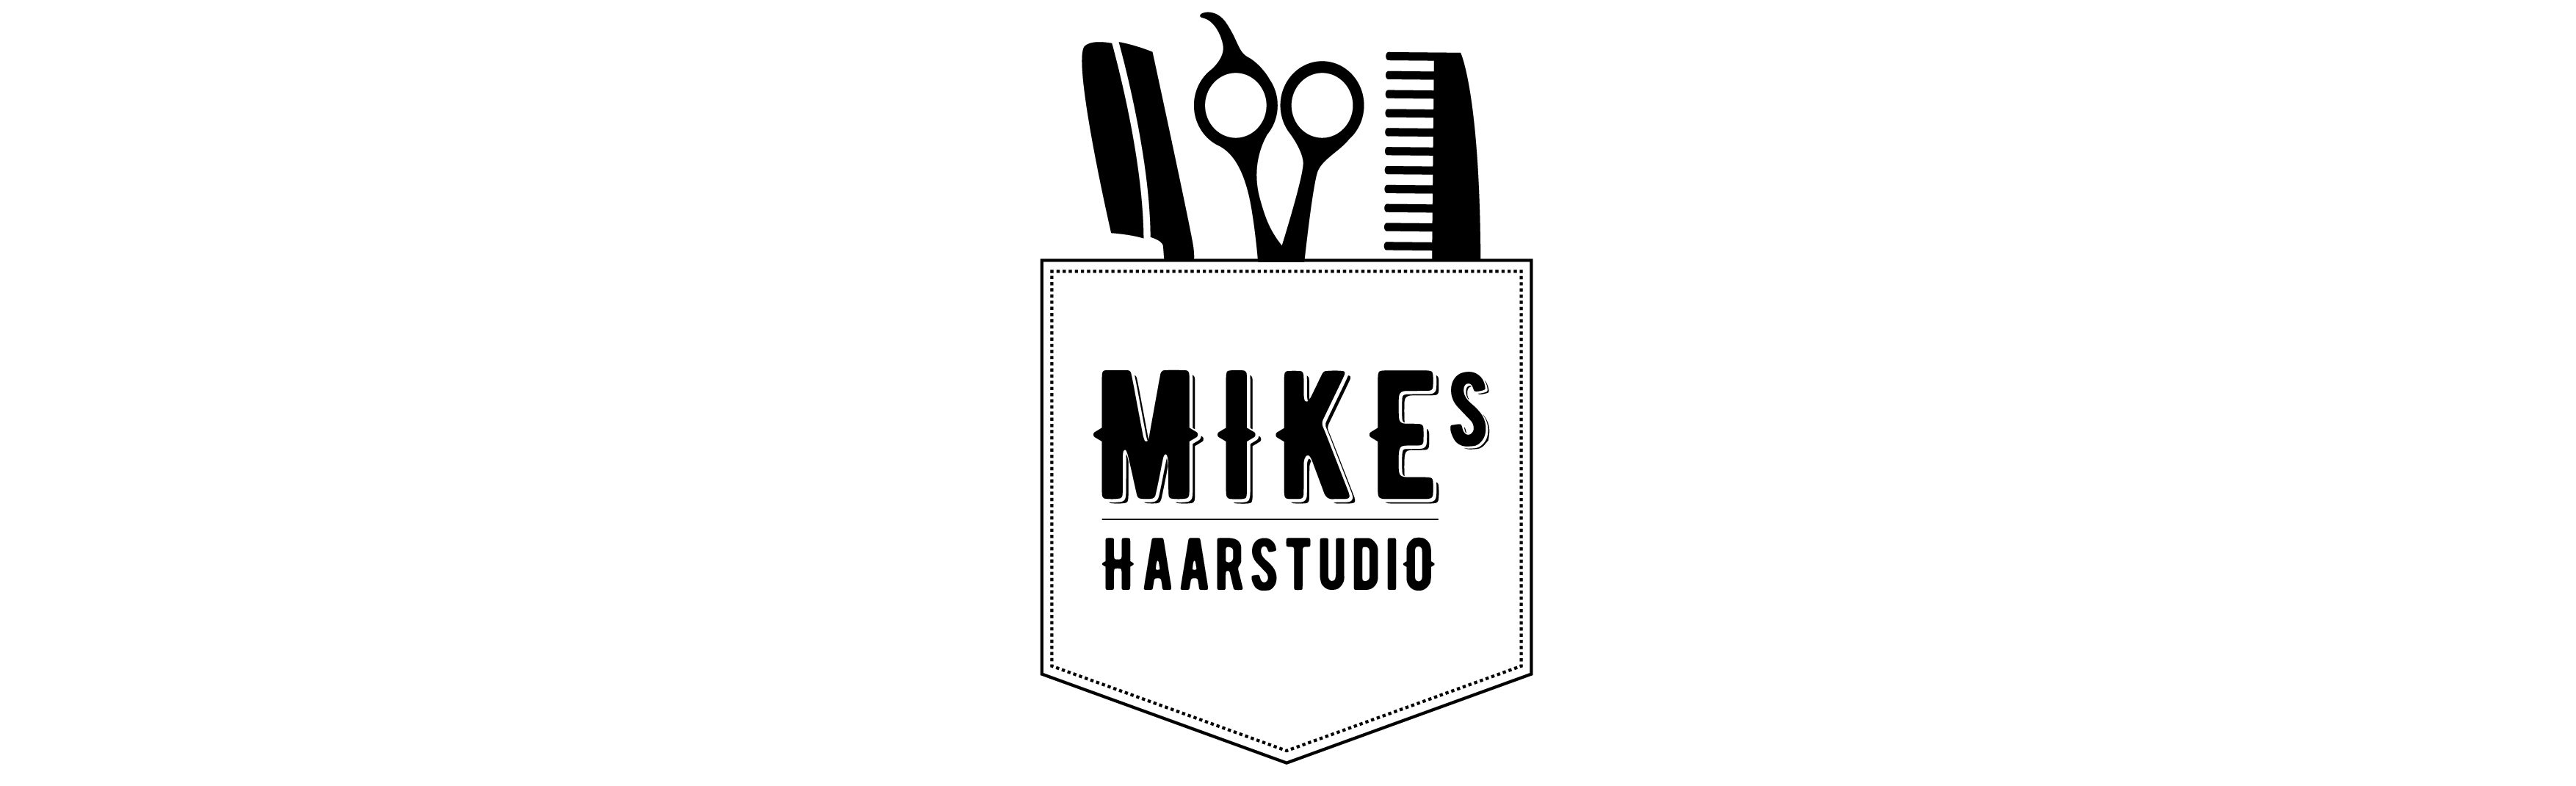 Mike's Haarstudio